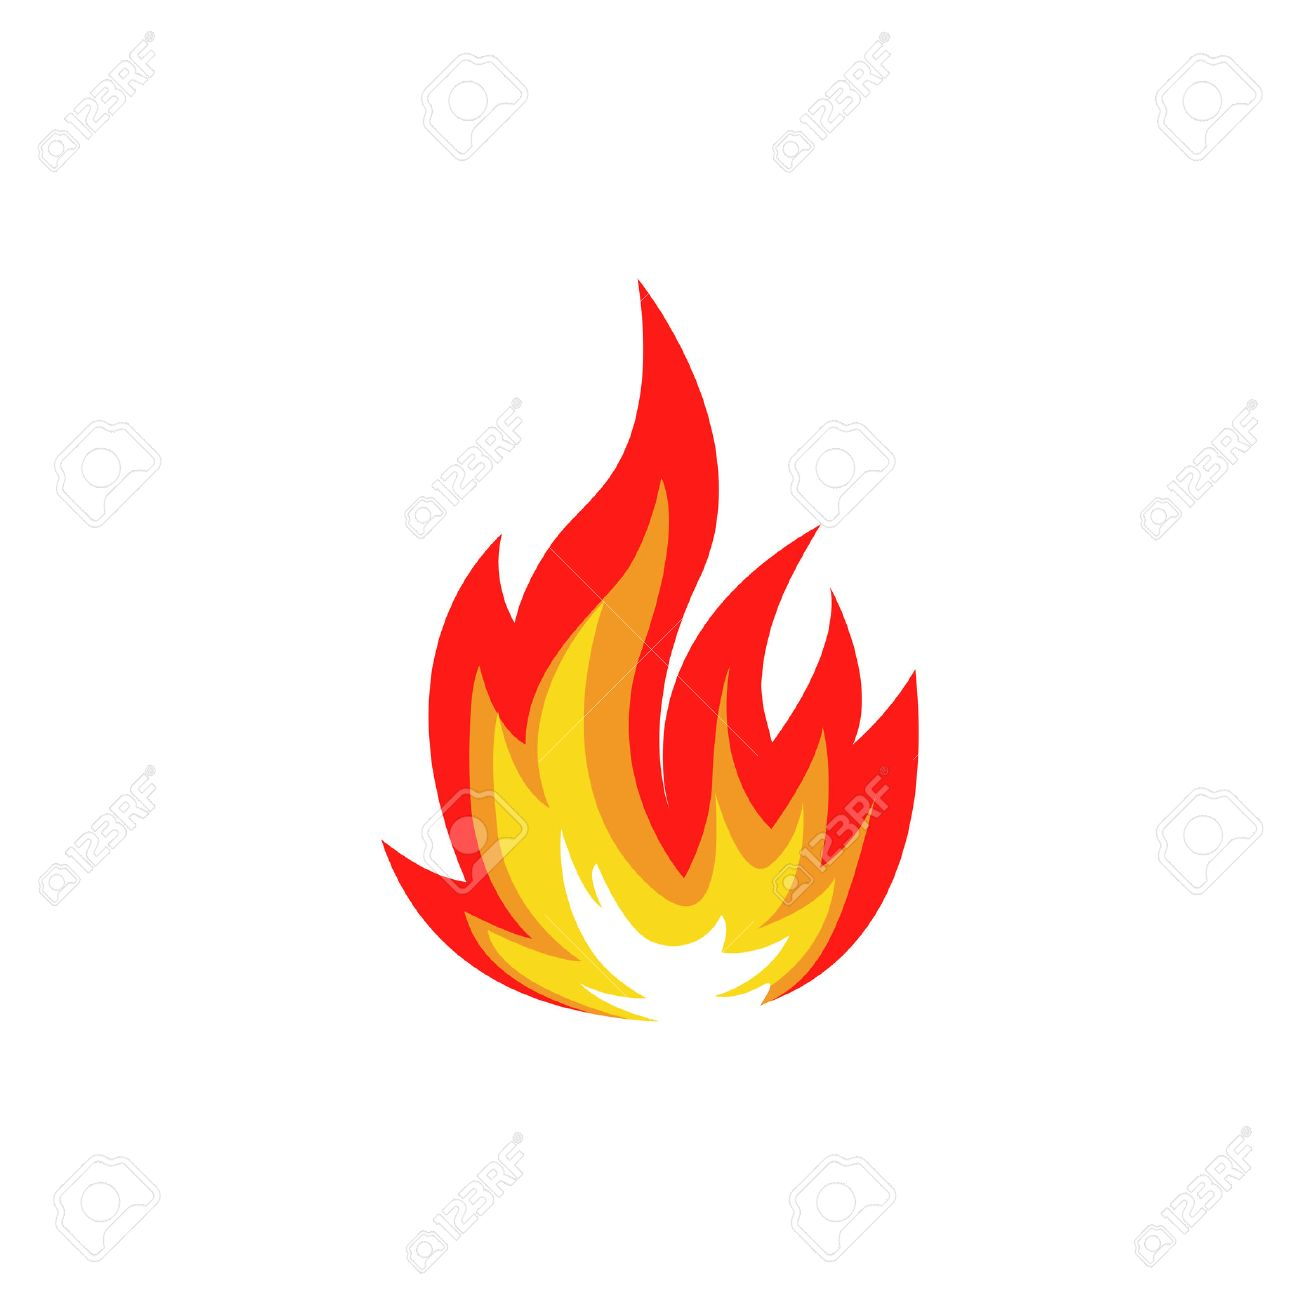 Isolated abstract red and orange color fire flame set on white background. Campfire . Spicy food symbol. Heat icon. Hot energy sign. Vector fire illustration. - 64114511